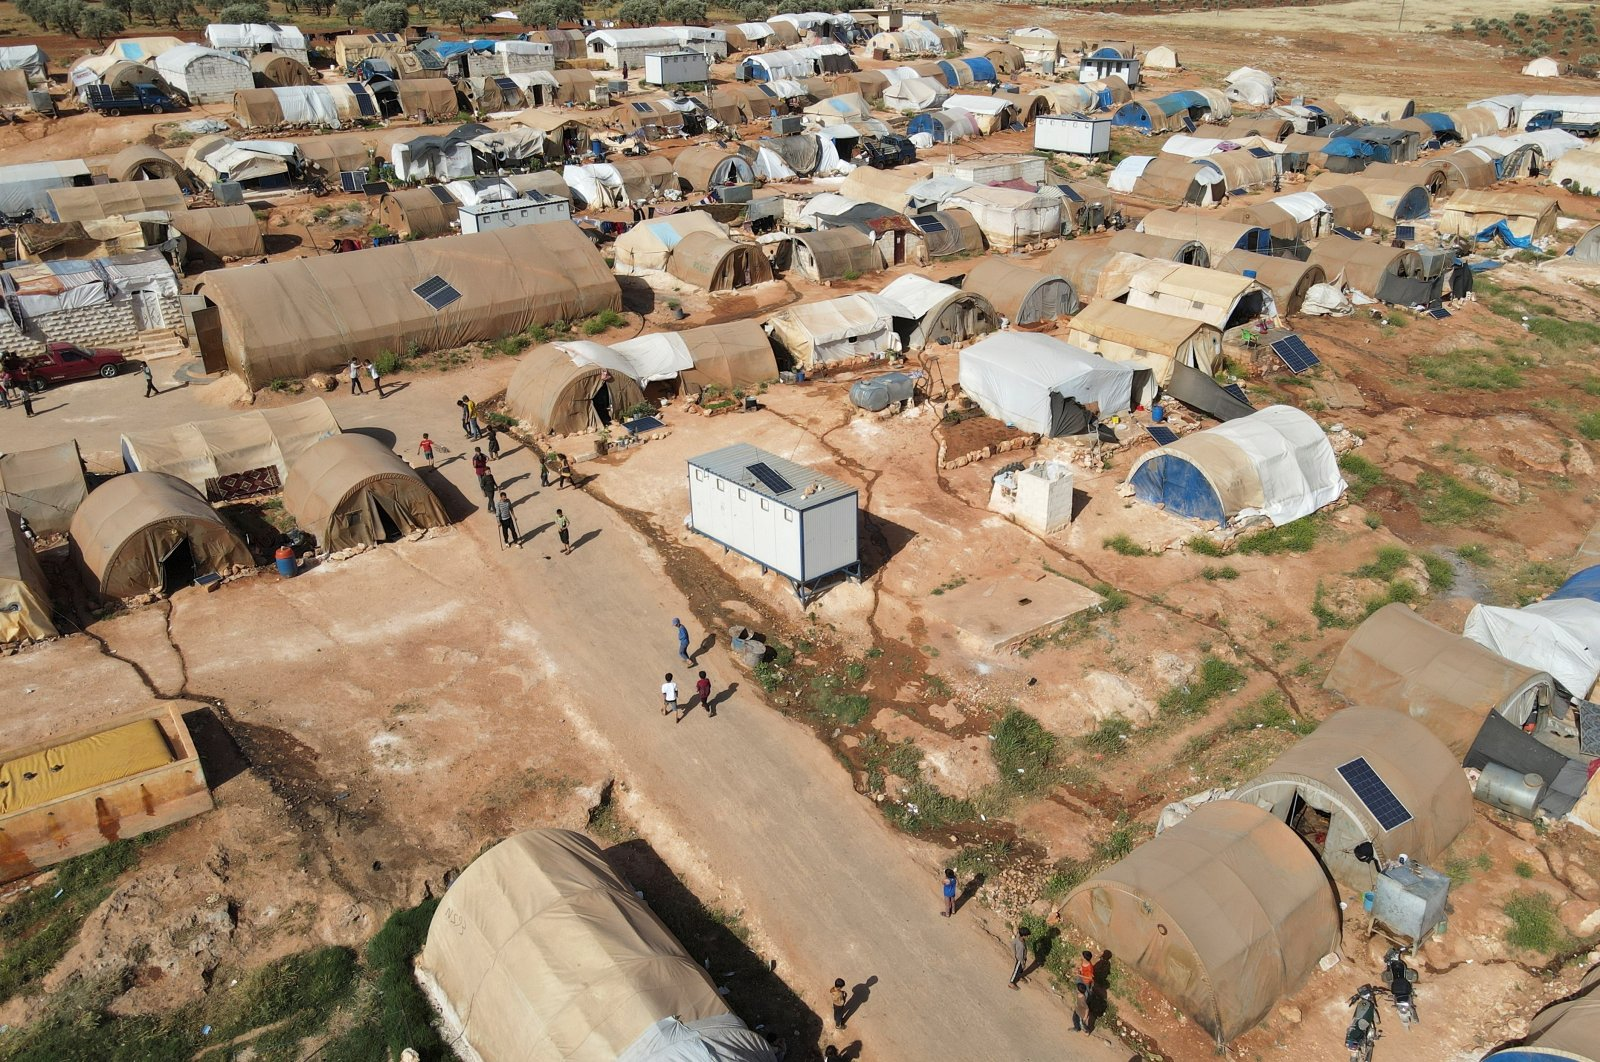 A general view shows a camp for internally displaced Syrians in northern Idlib, Syria, May 5, 2021. (Reuters photo)